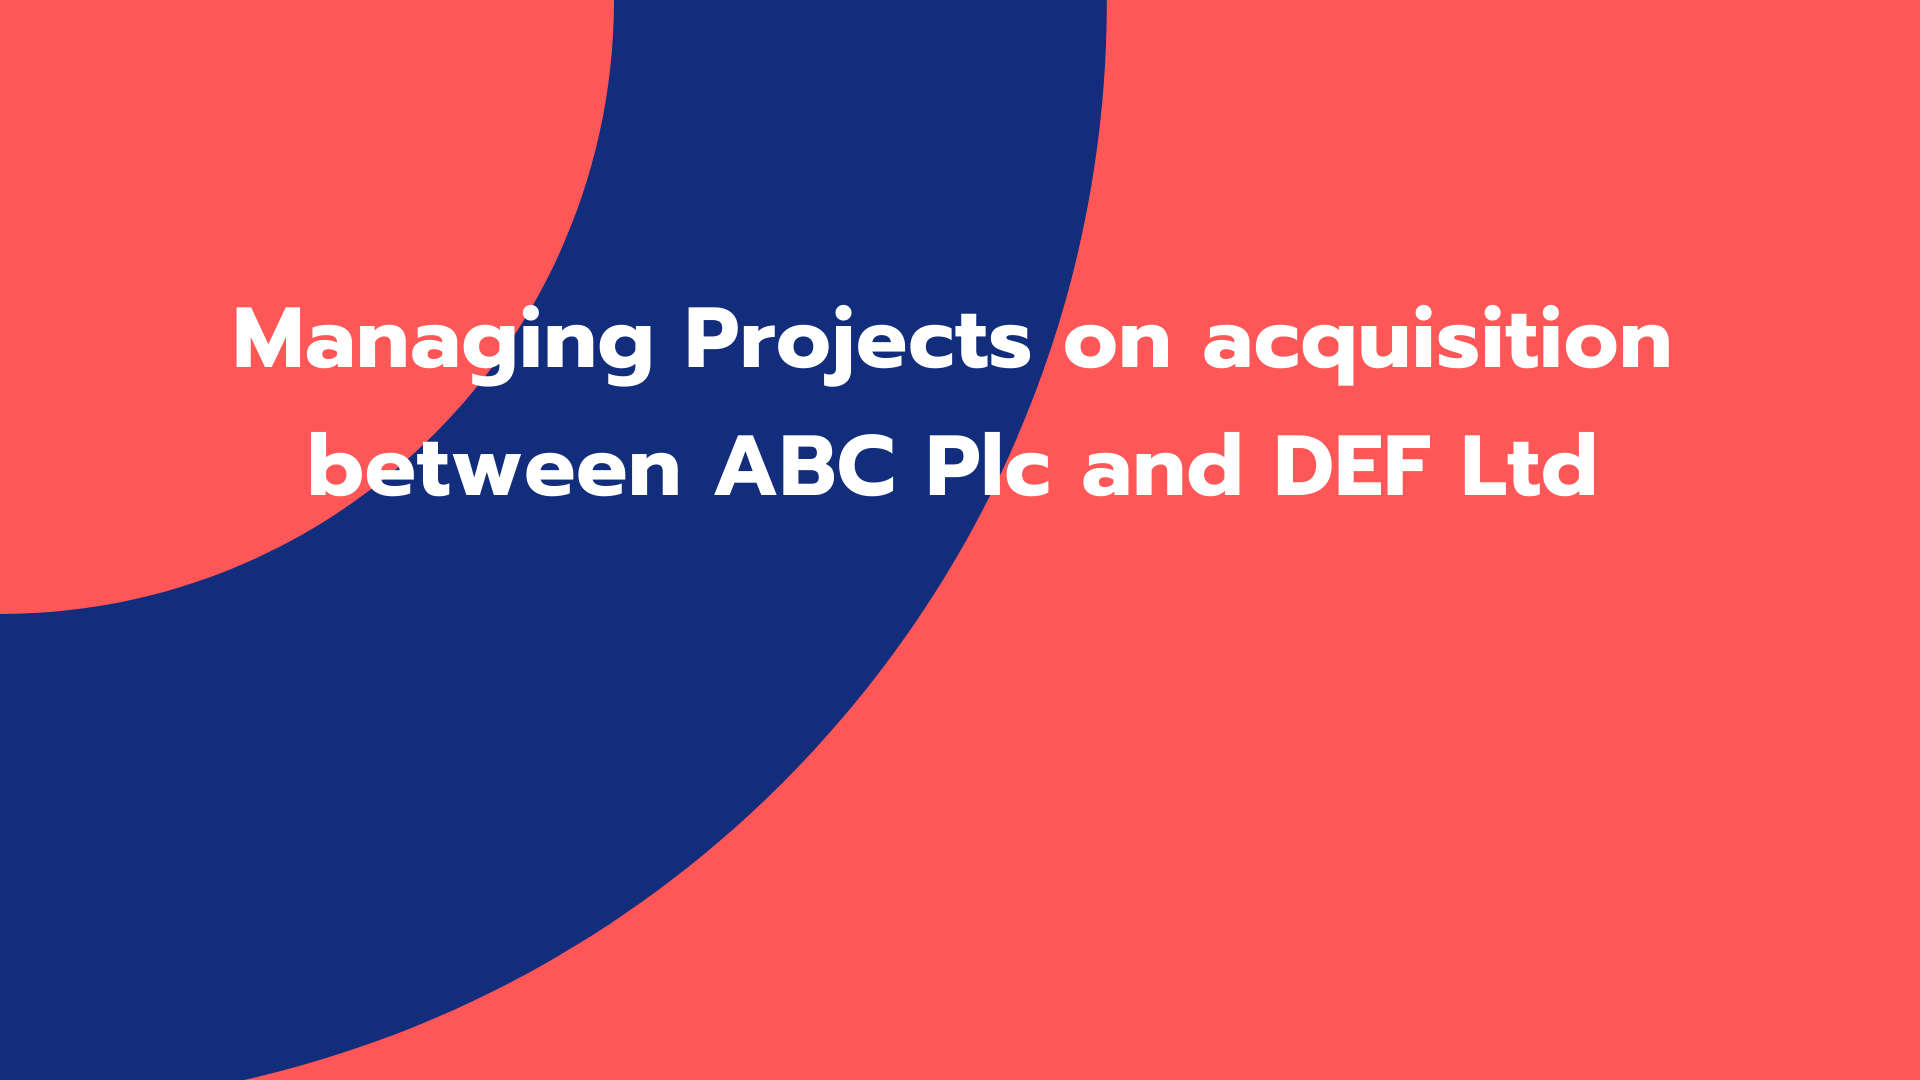 Managing Projects on acquisition between ABC Plc and DEF Ltd